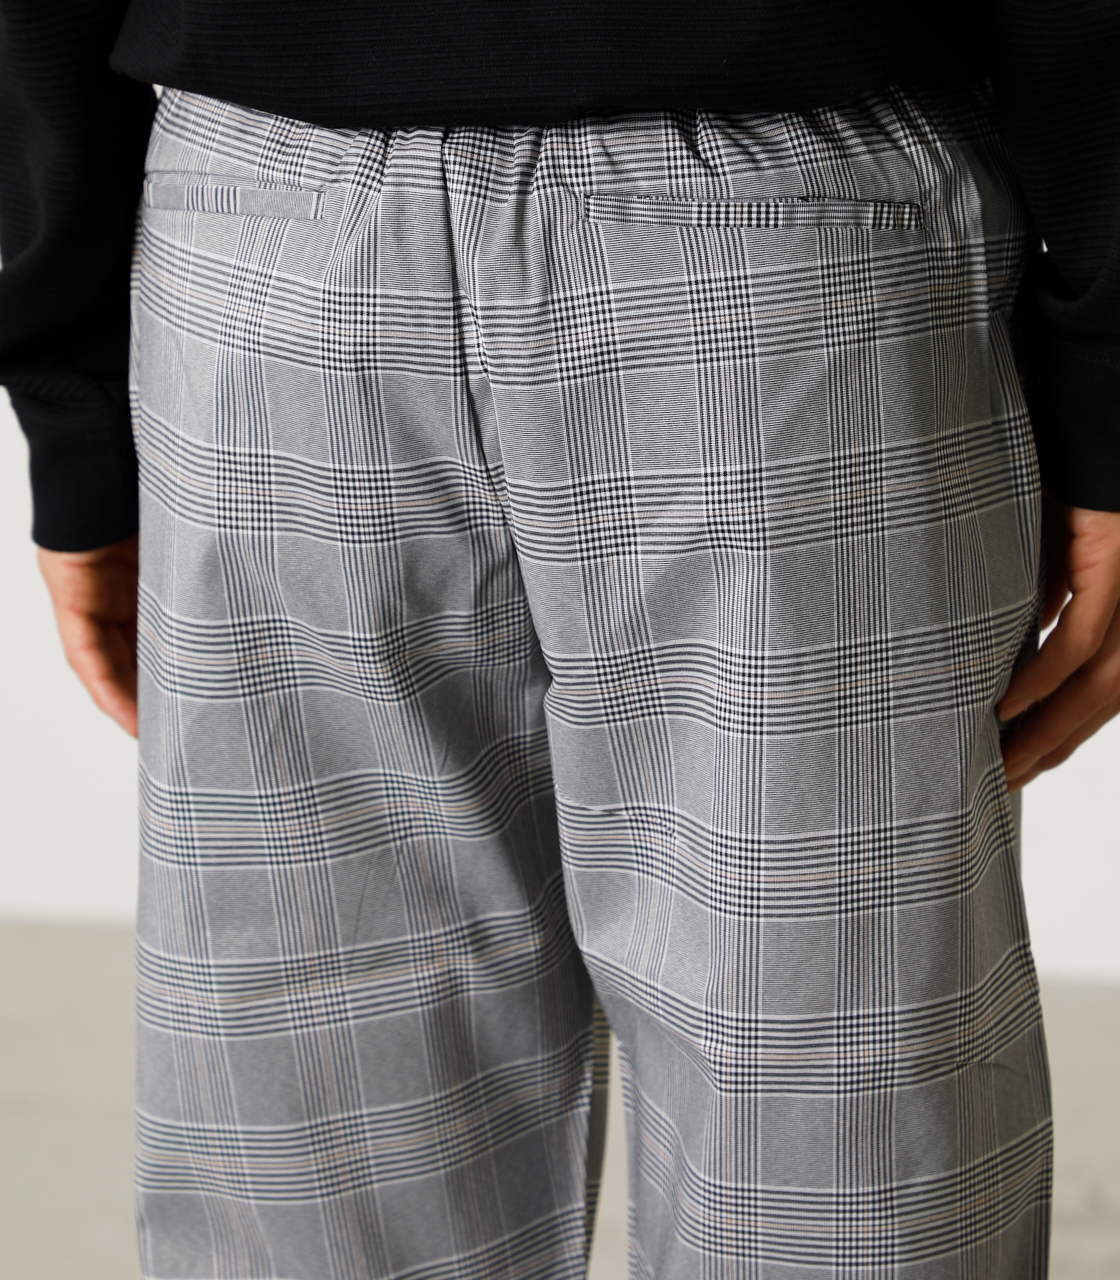 TR RELAX PANTS/TRリラックスパンツ 詳細画像 柄GRY 7